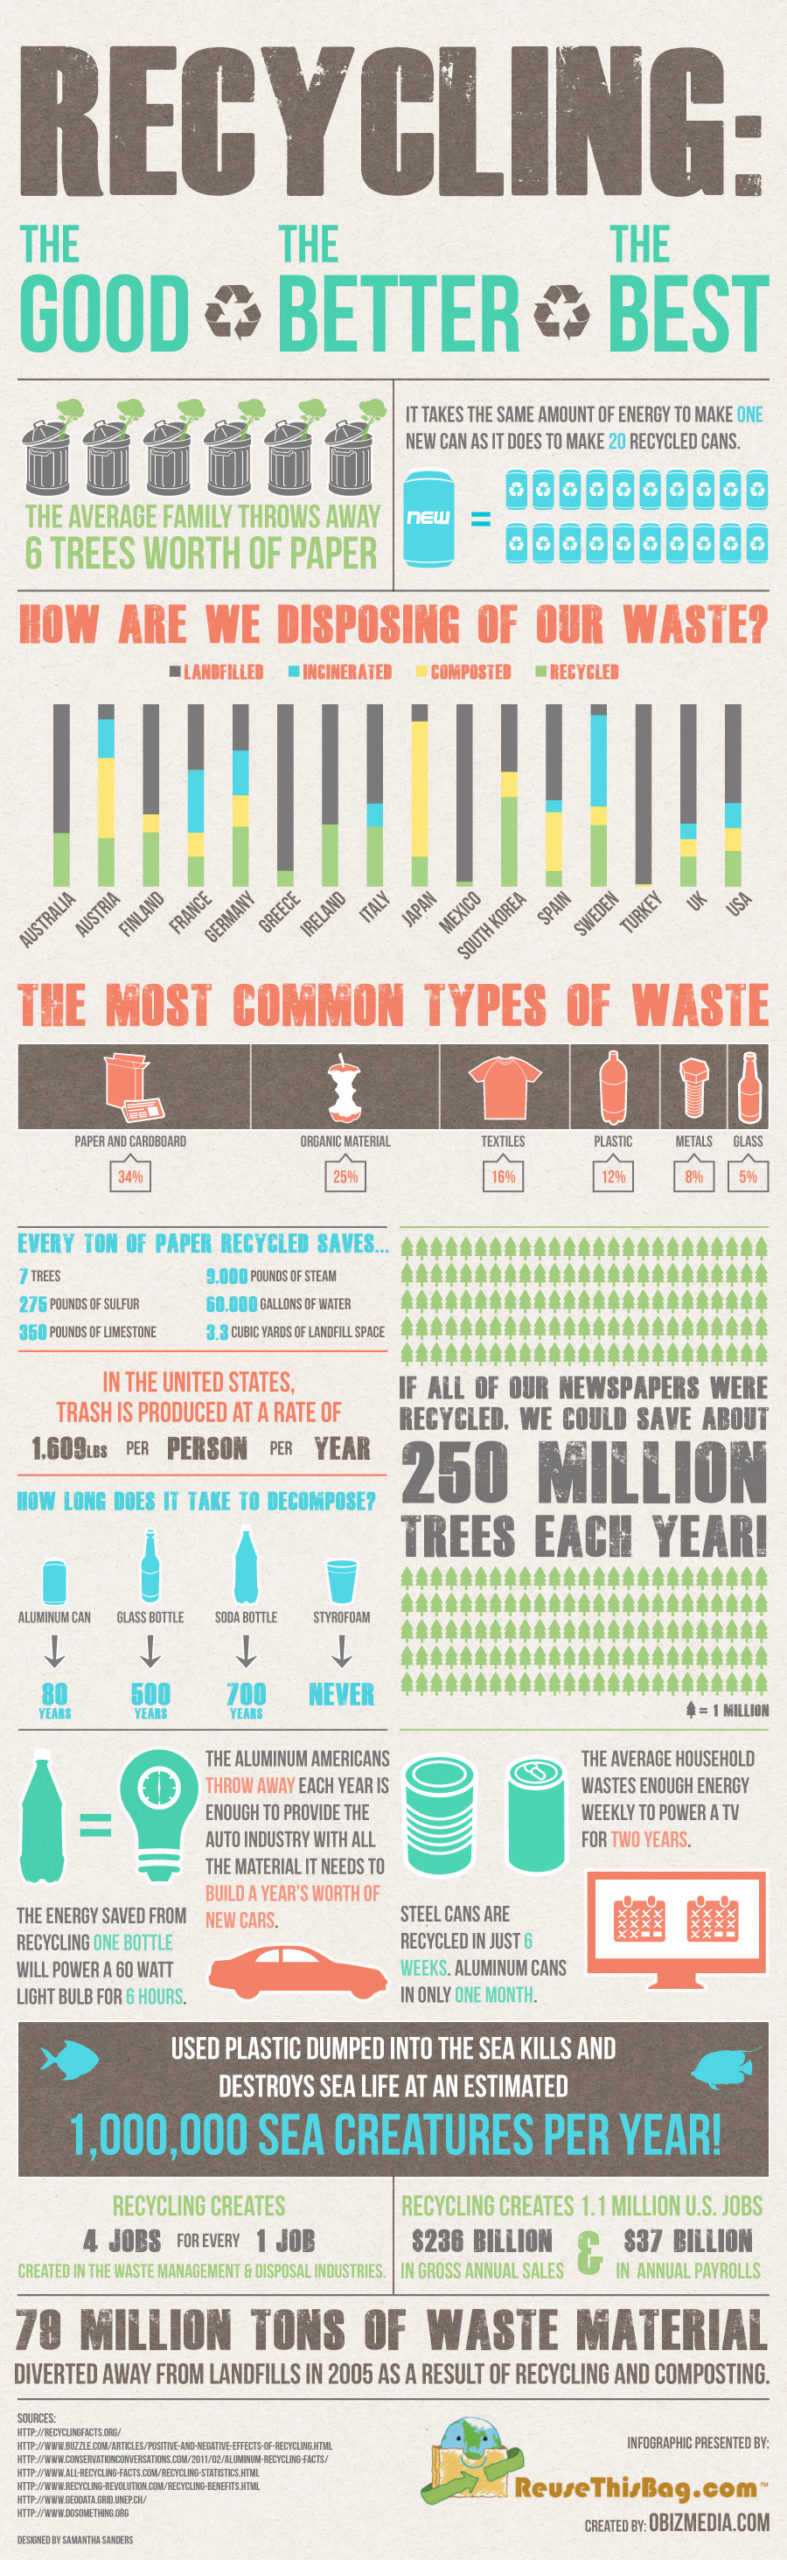 Recycling Facts and Statistics Around the Country [INFOGRAPHIC]